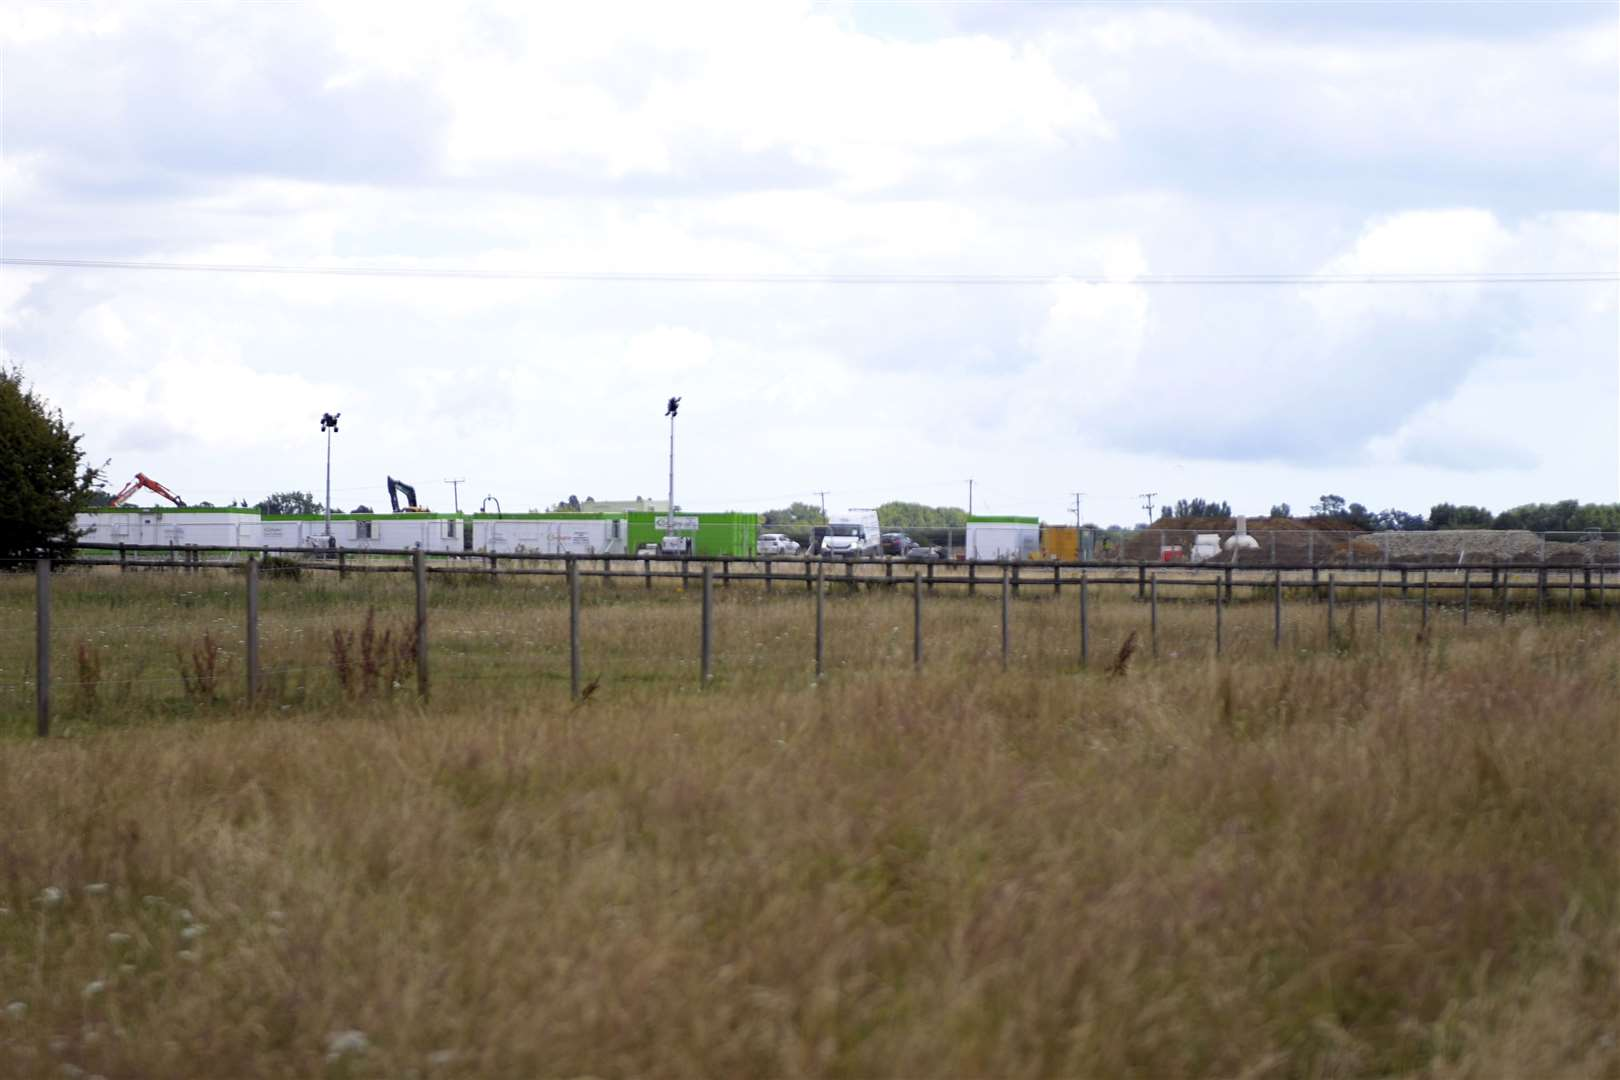 Work has already started at new lorry park in Ashford Picture: Barry Goodwin